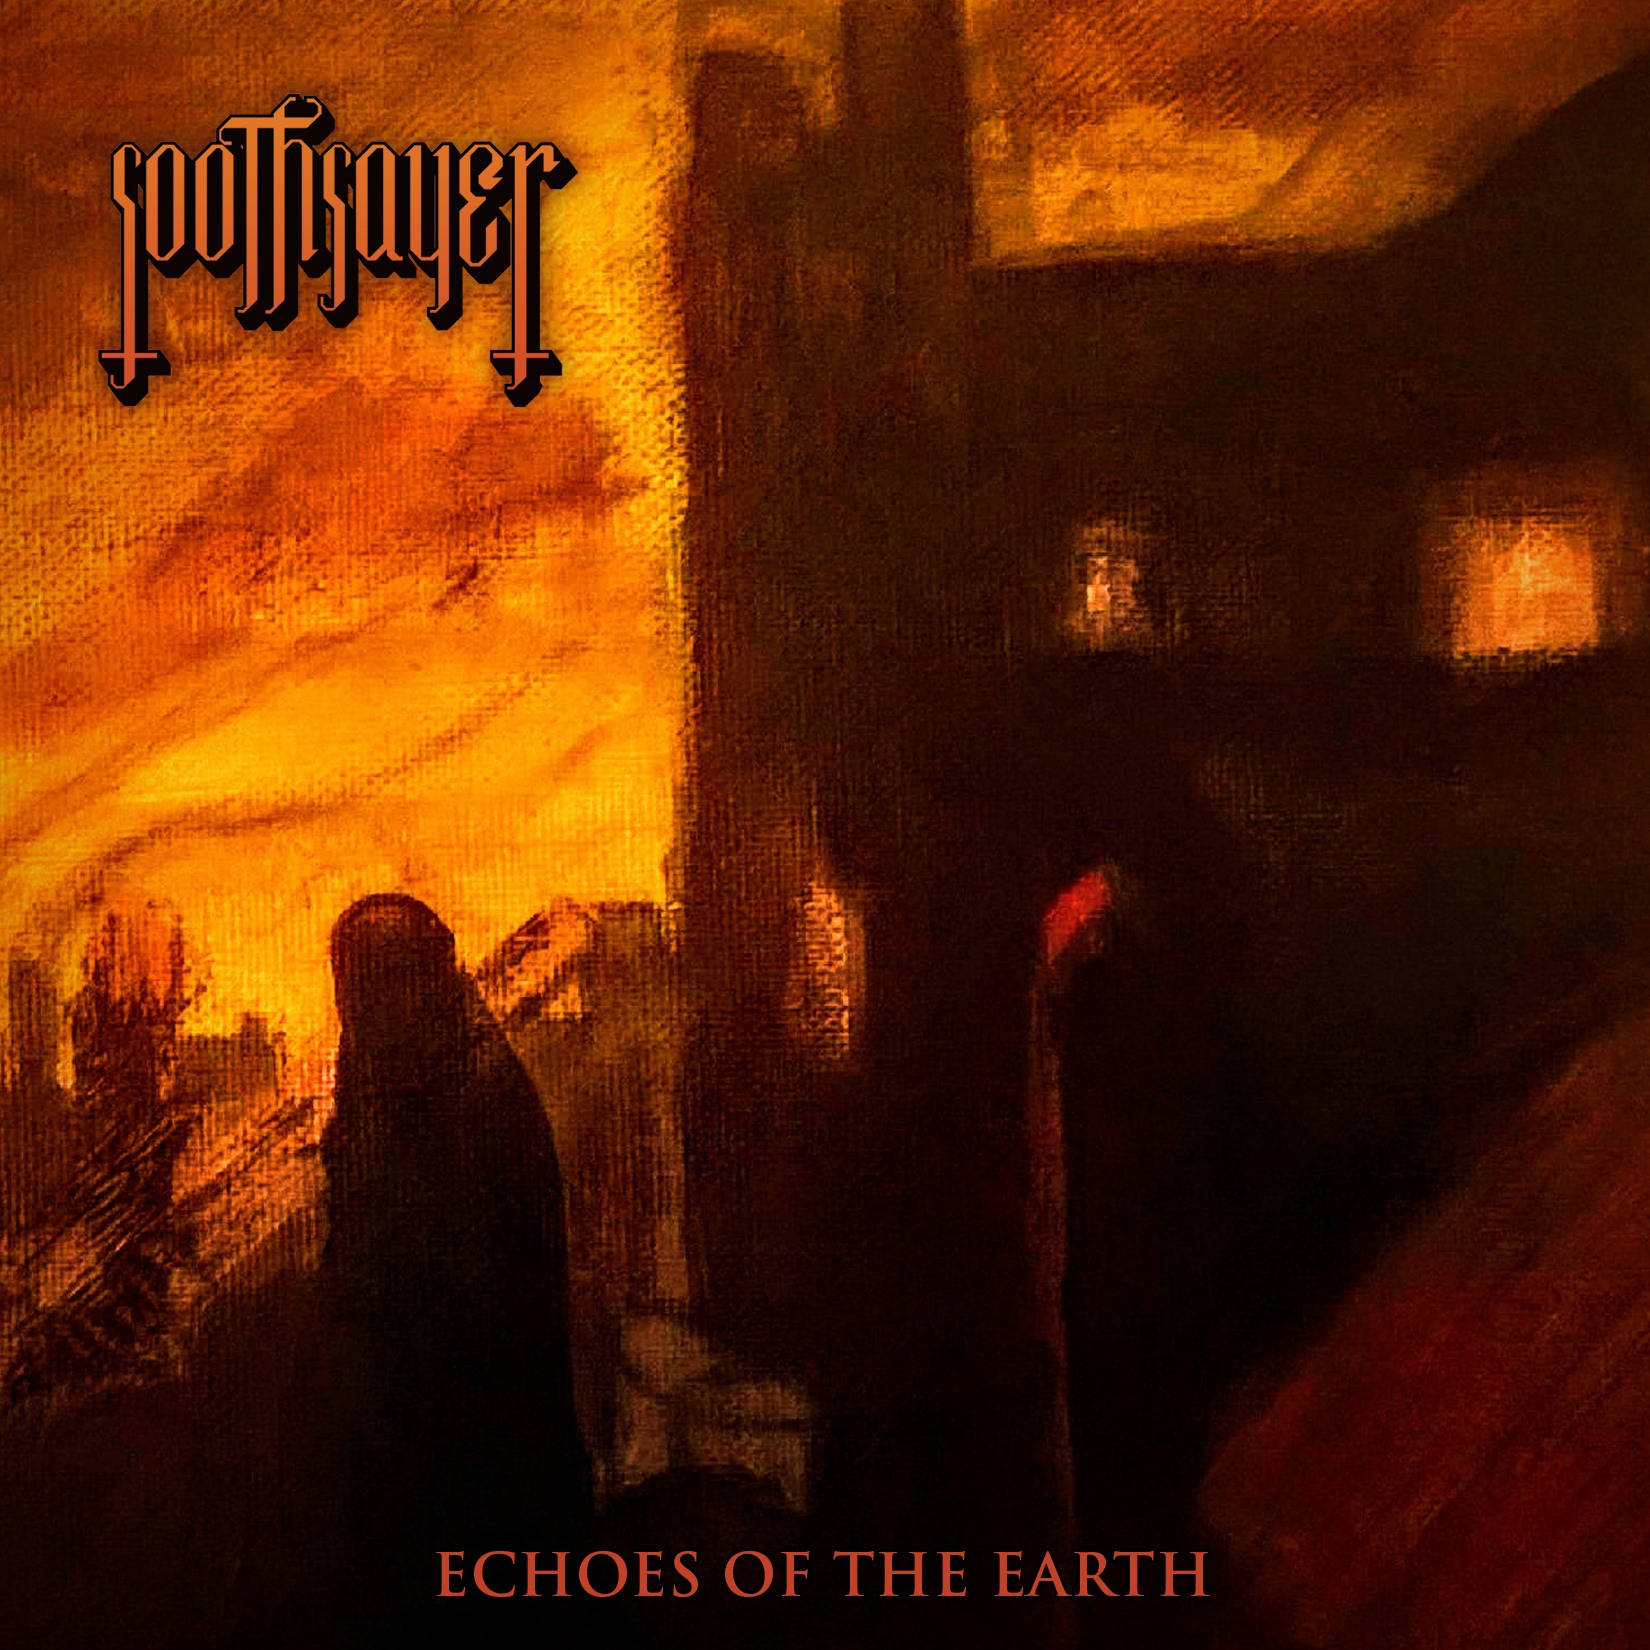 Soothsayer Echoes Of The Earth Liam Hughes Cover Artwork